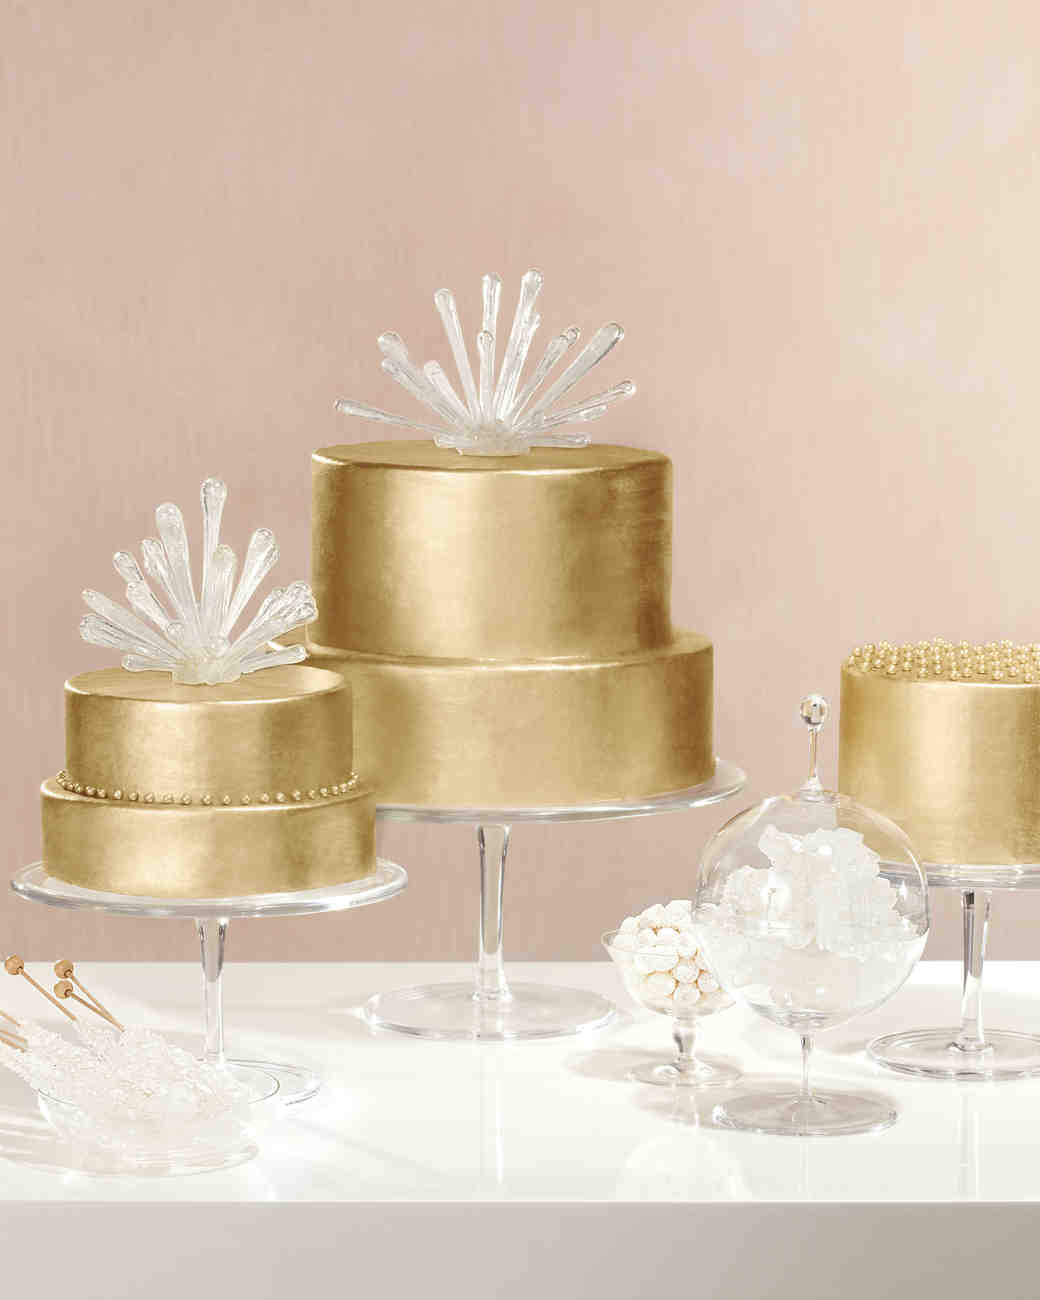 Best Gold Luster Dust To Make Cake Layer